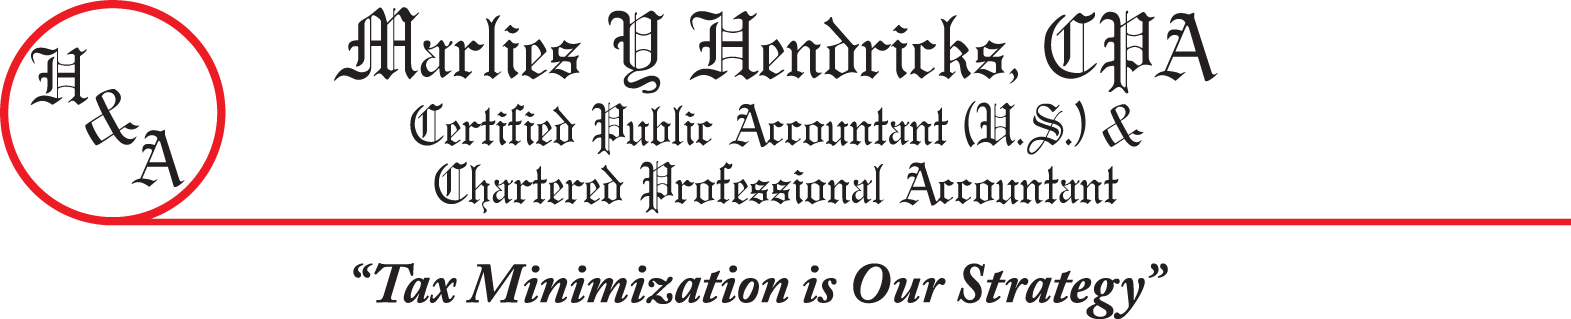 Hendricks & Associate, CPAs